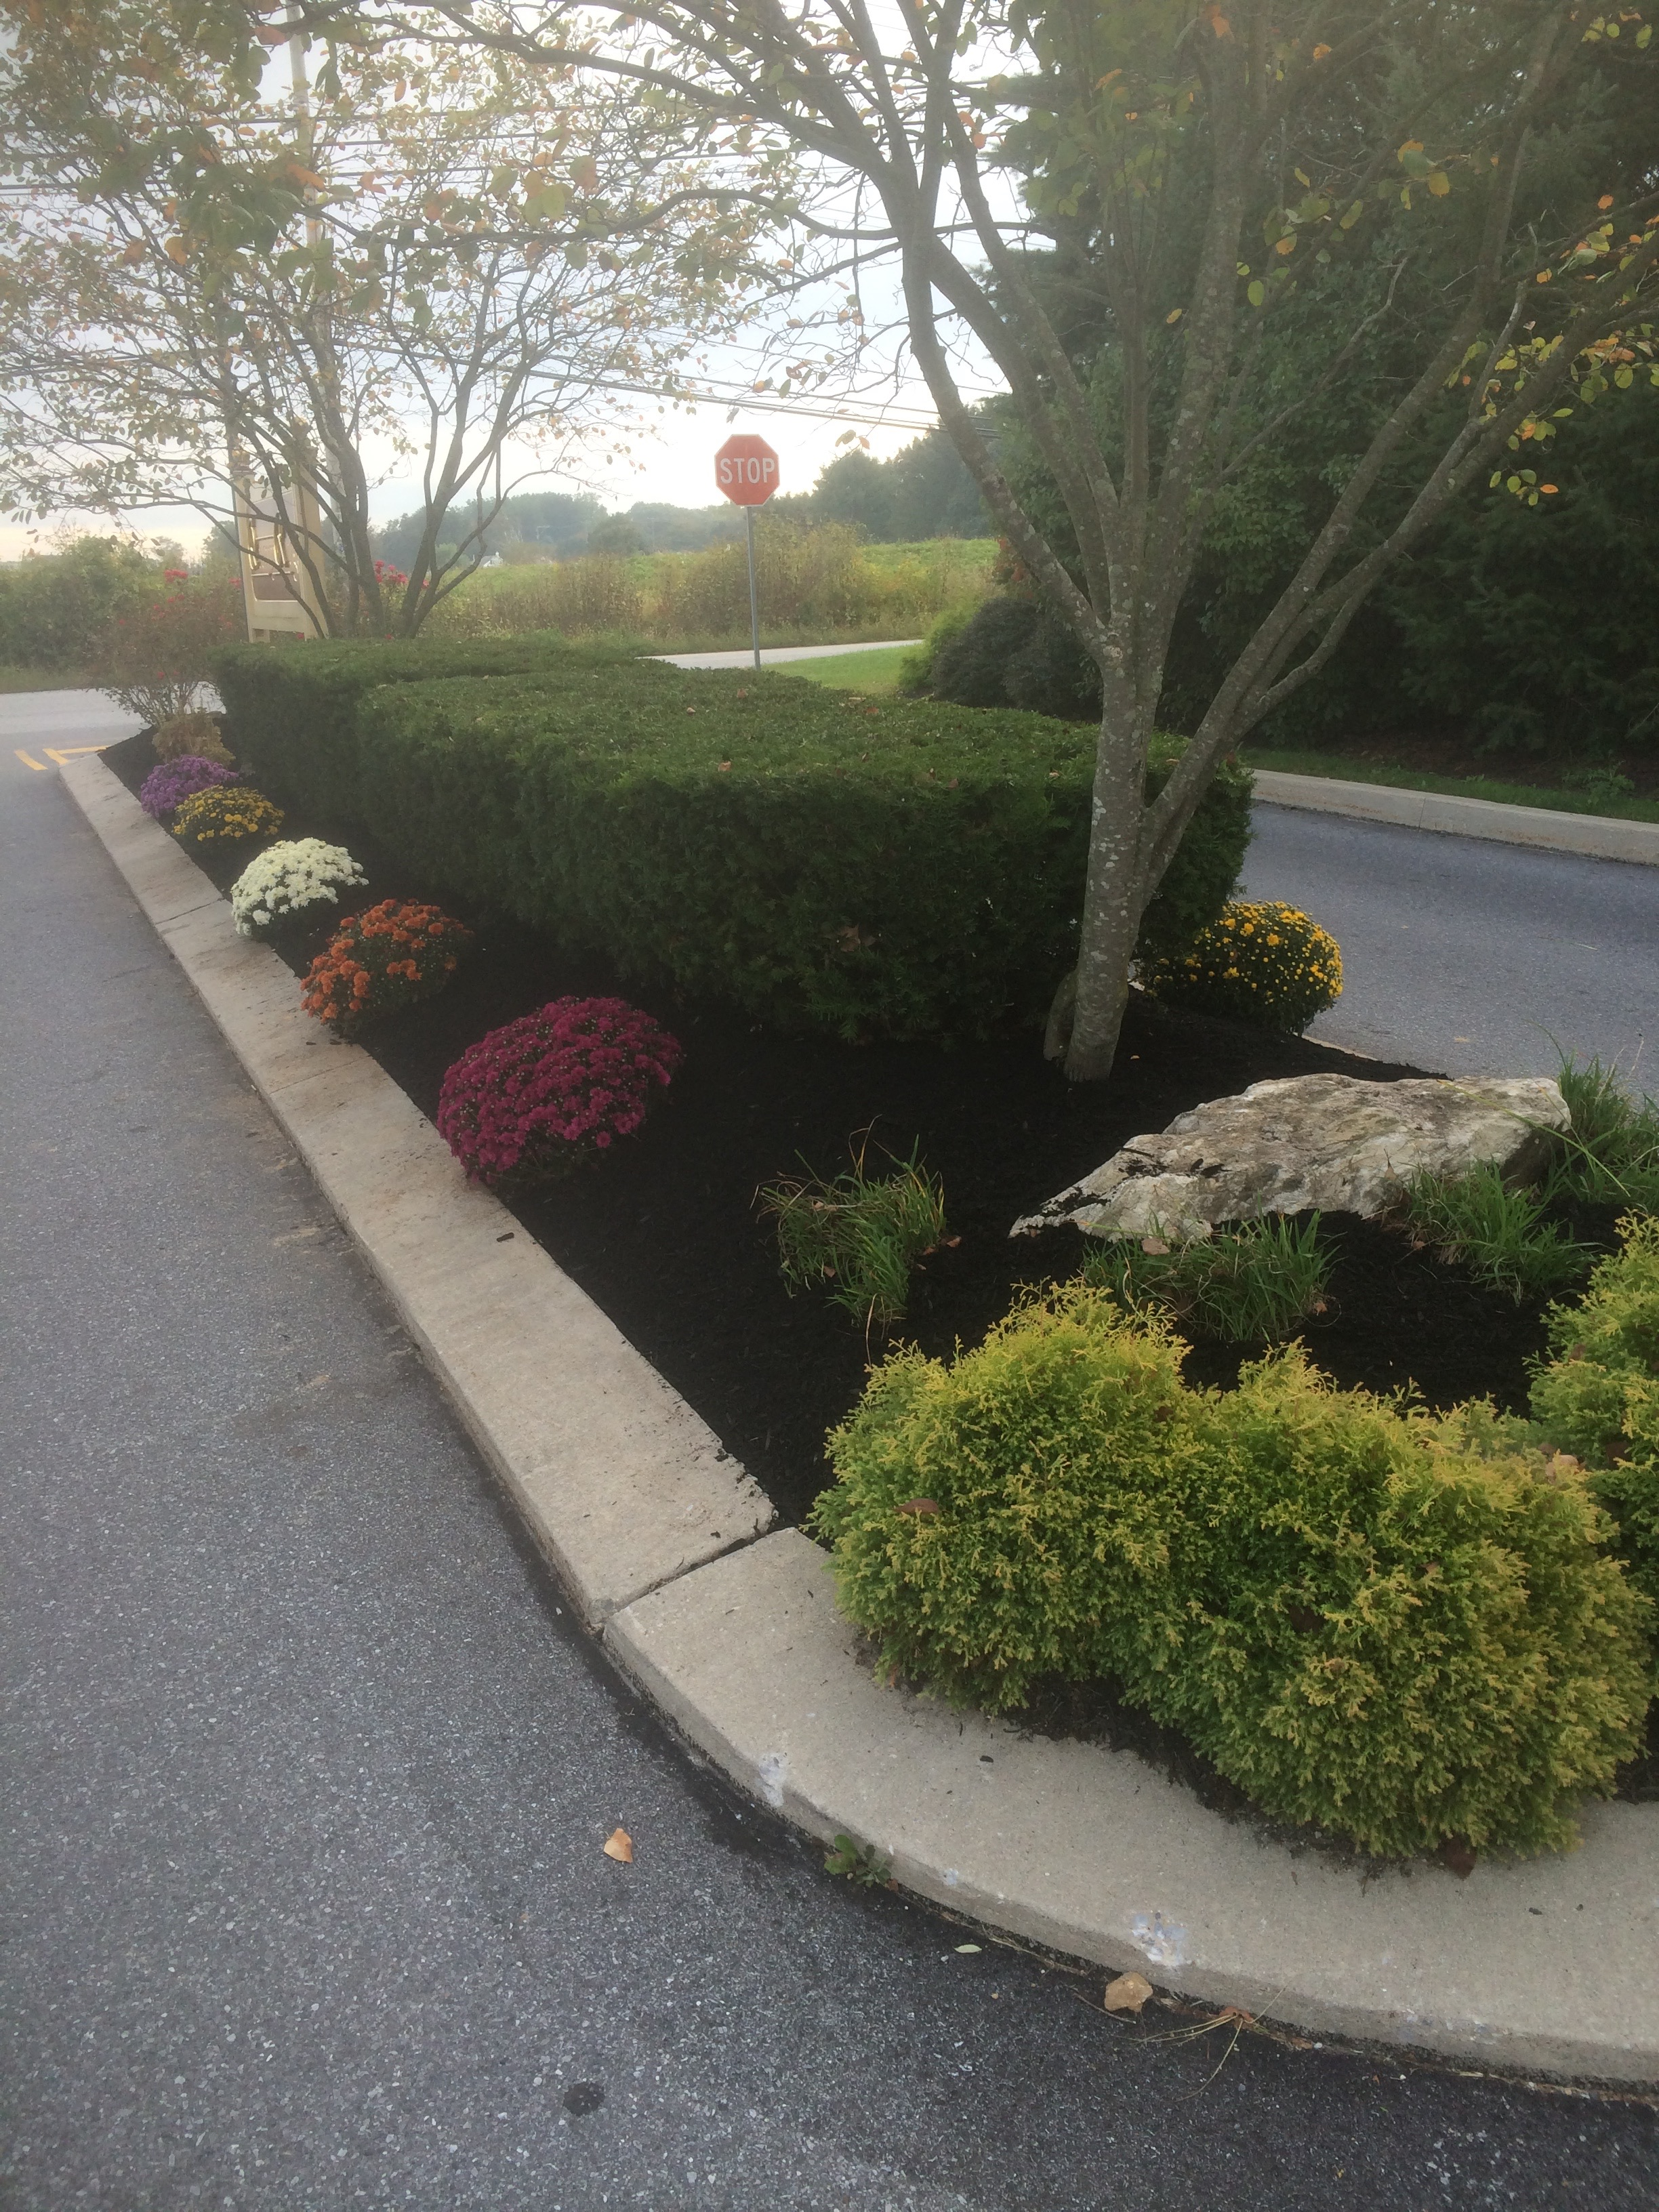 Mulch and planting of mums